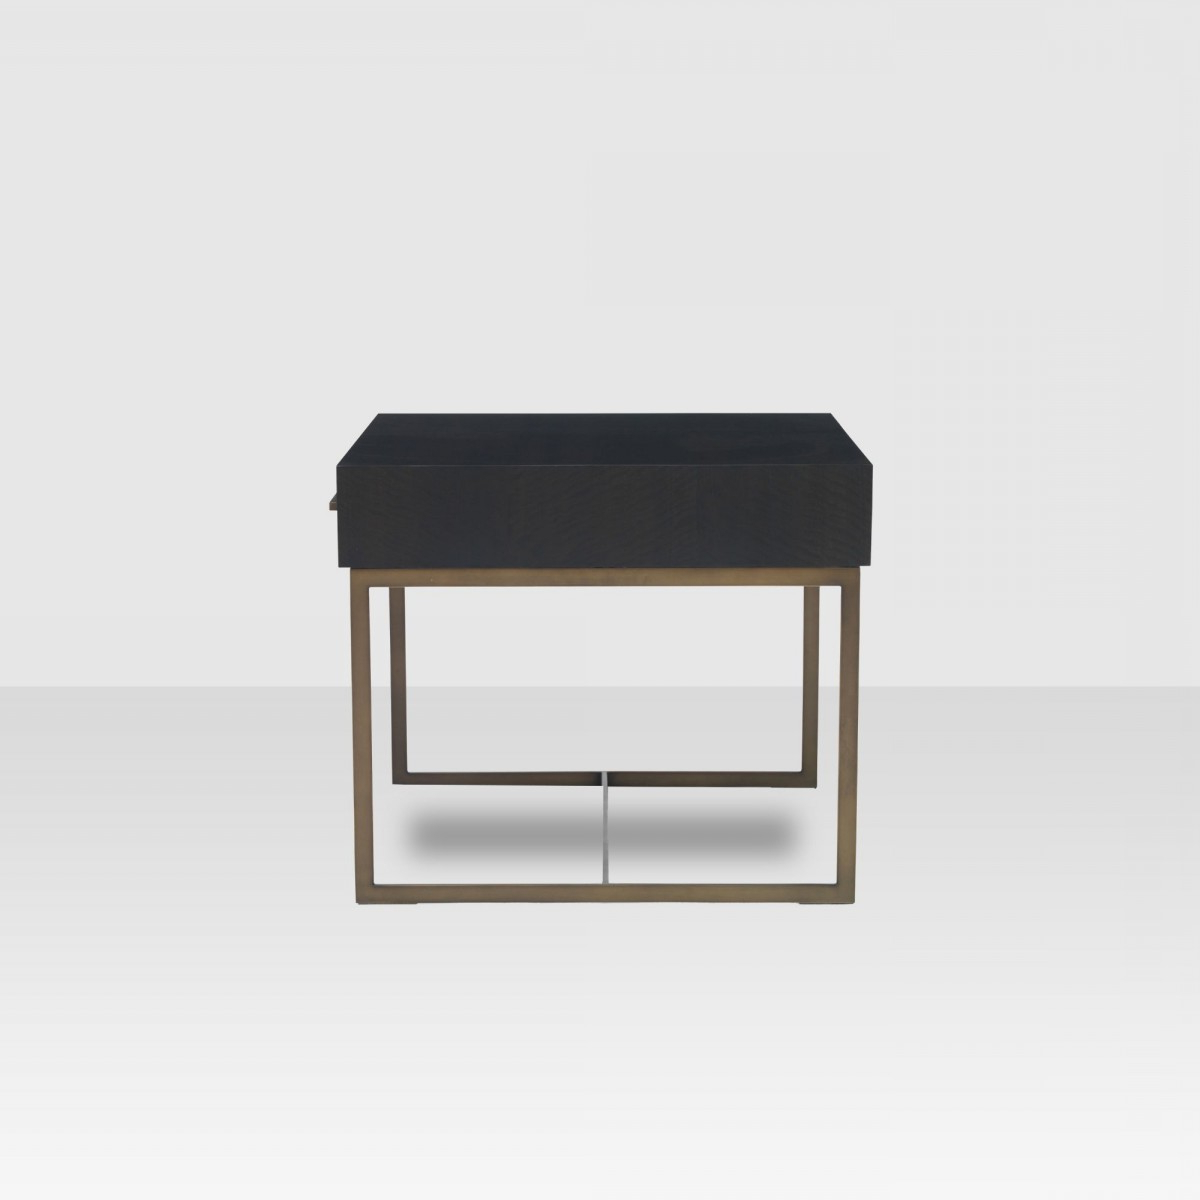 Allure Nesting Cocktail Tables – Elte With Regard To Well Known Allure Cocktail Tables (Gallery 13 of 20)